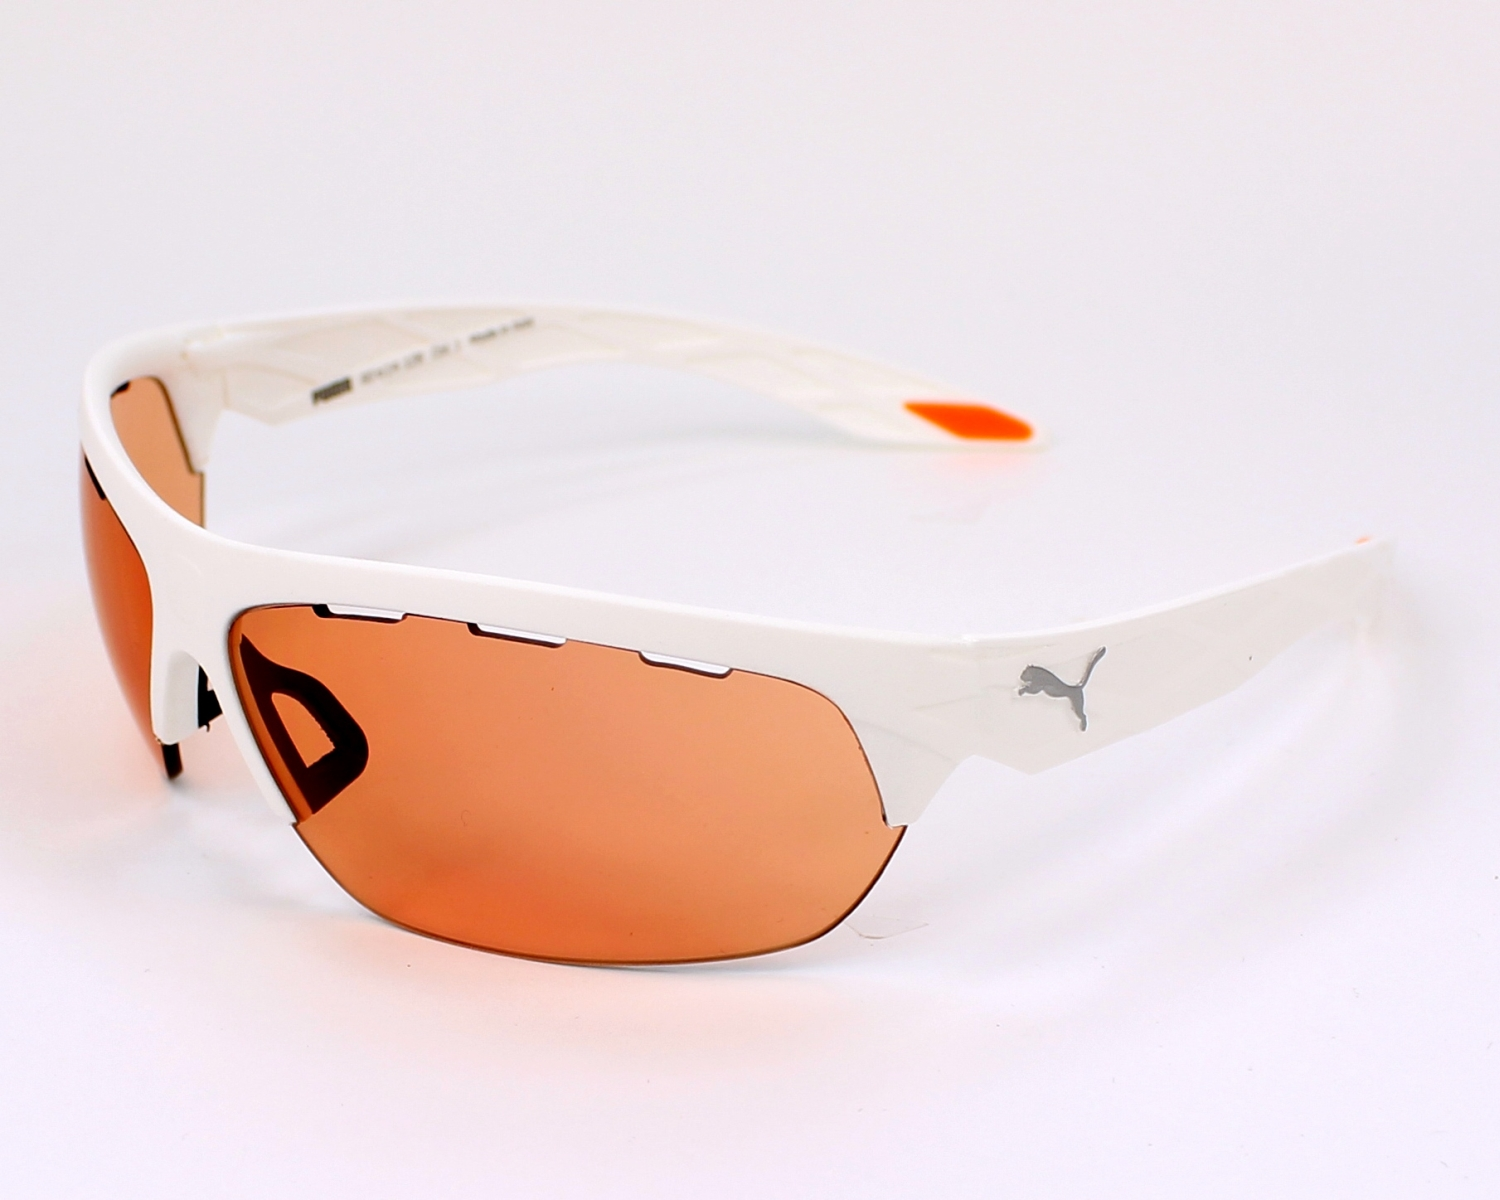 Puma Sunglasses White with Pink Lenses PU-0001-S 003 - Visionet US